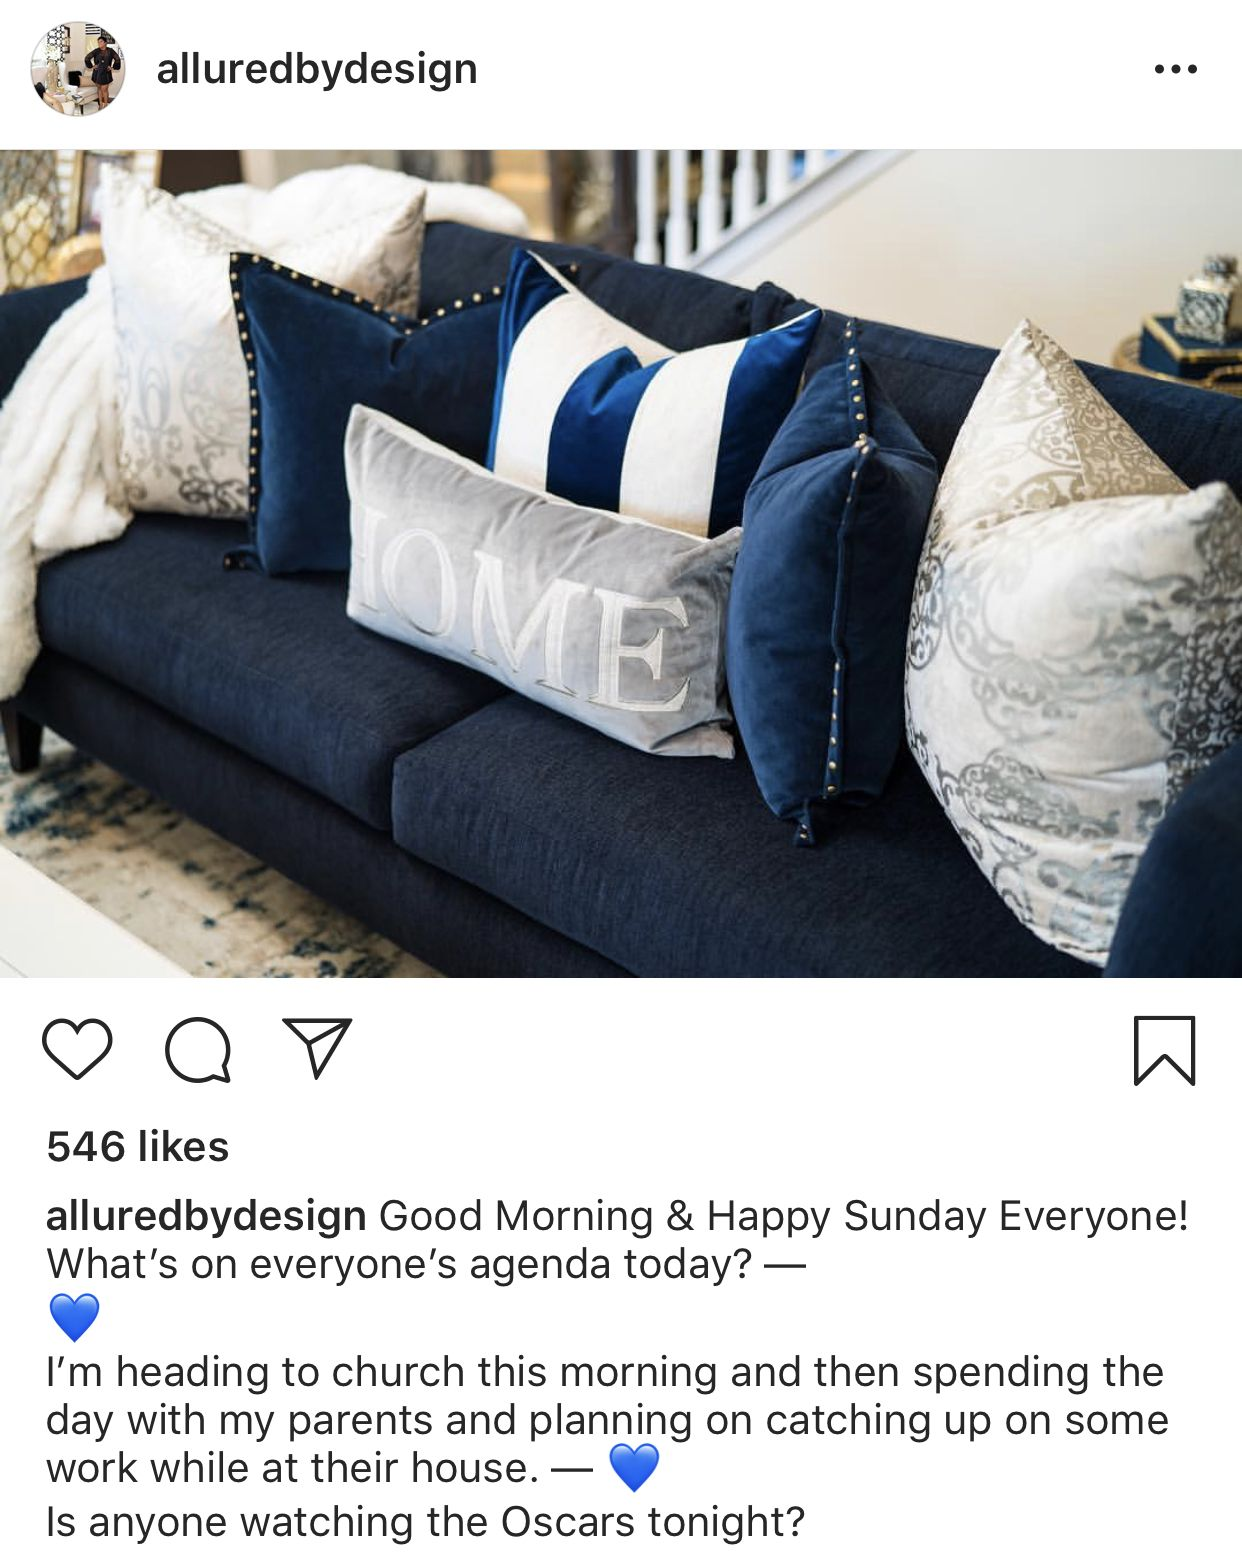 Navy Blue And Gray Couch Pillows What A Combination Blue Couch Pillows Blue Couch Living Room Navy Couch Pillows